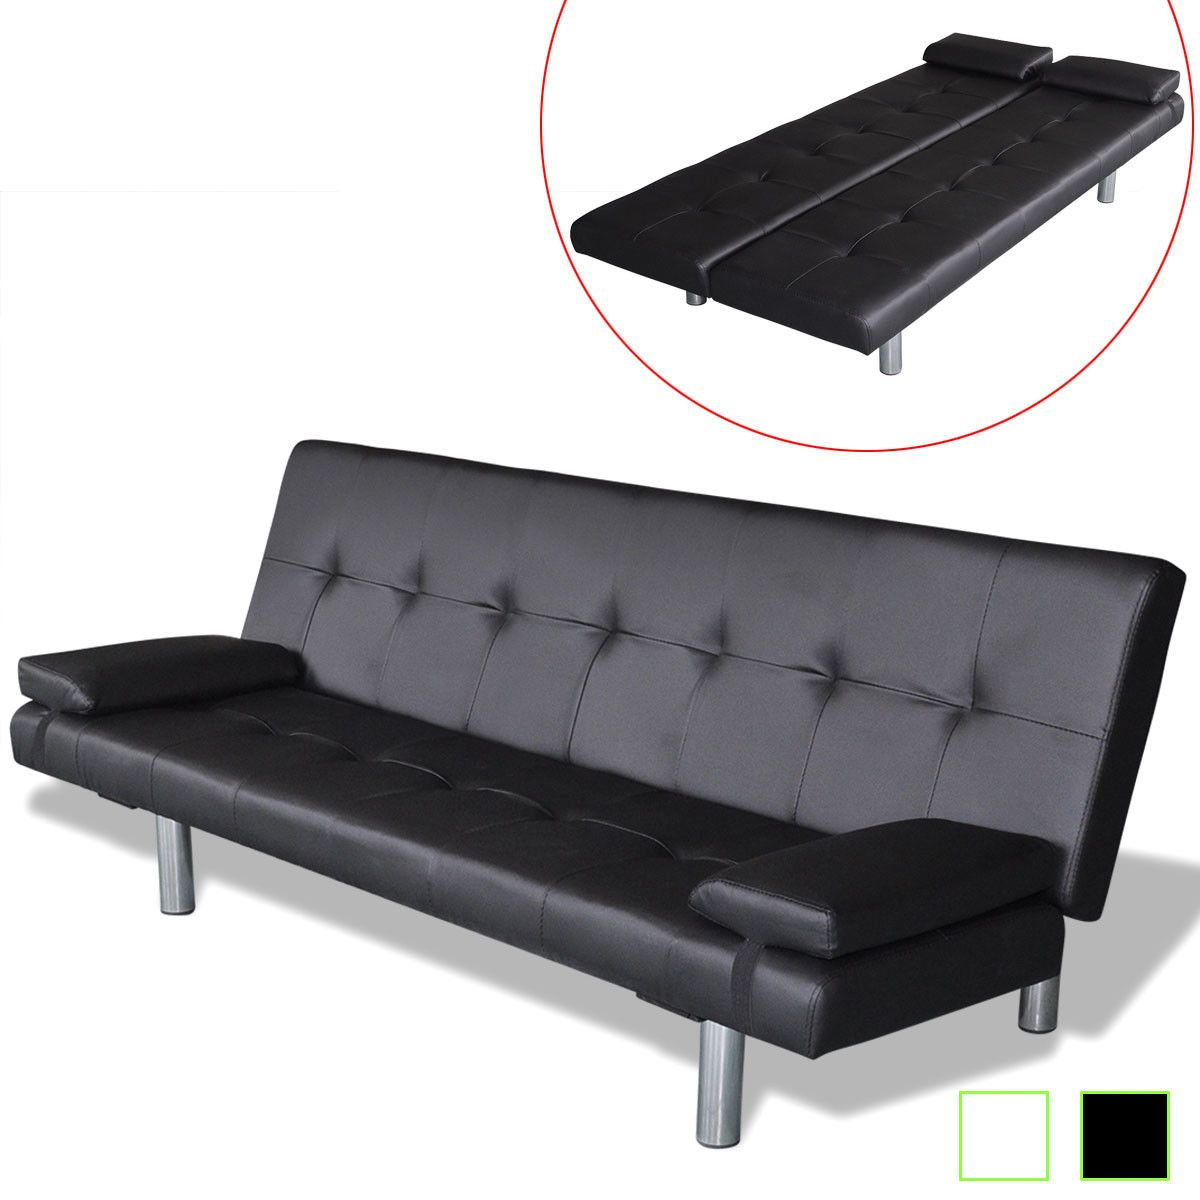 155 99 artificial leather convertible sofa bed futon couch black rh pinterest com